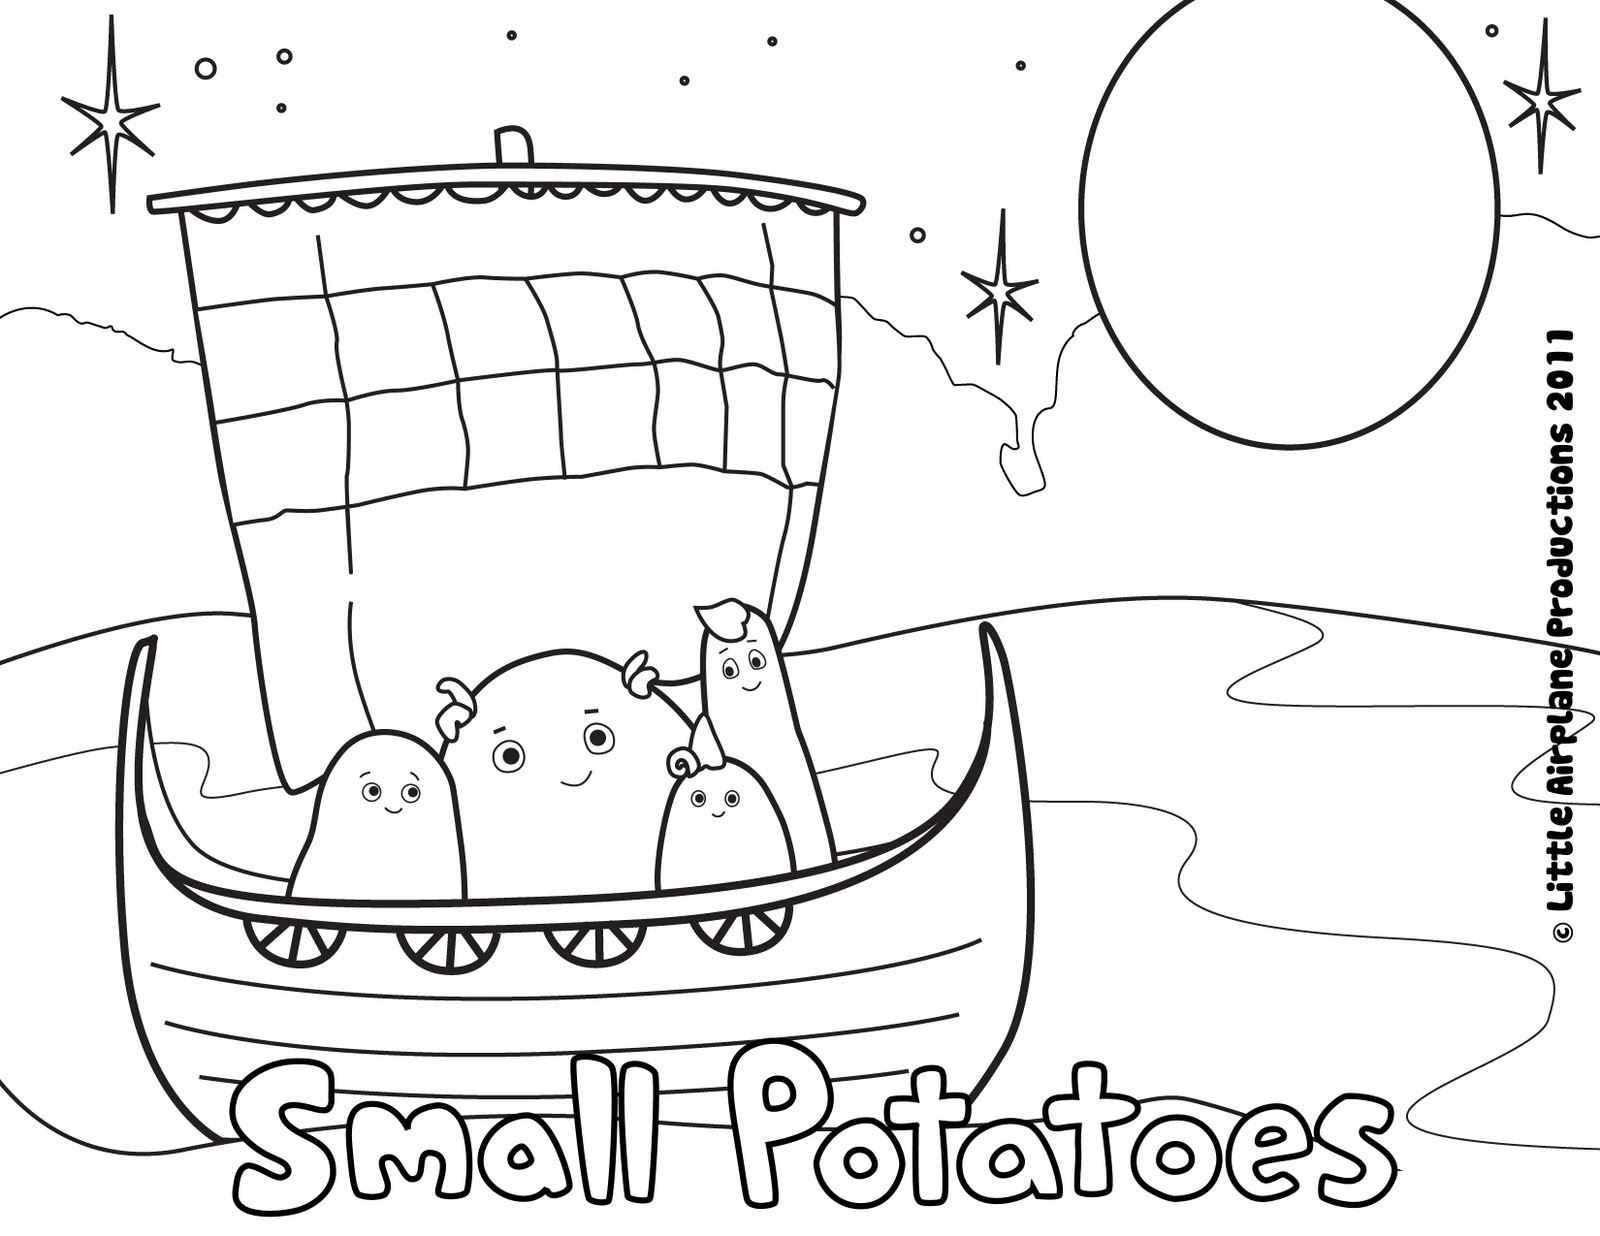 erica kepler small potatoes coloring pages!